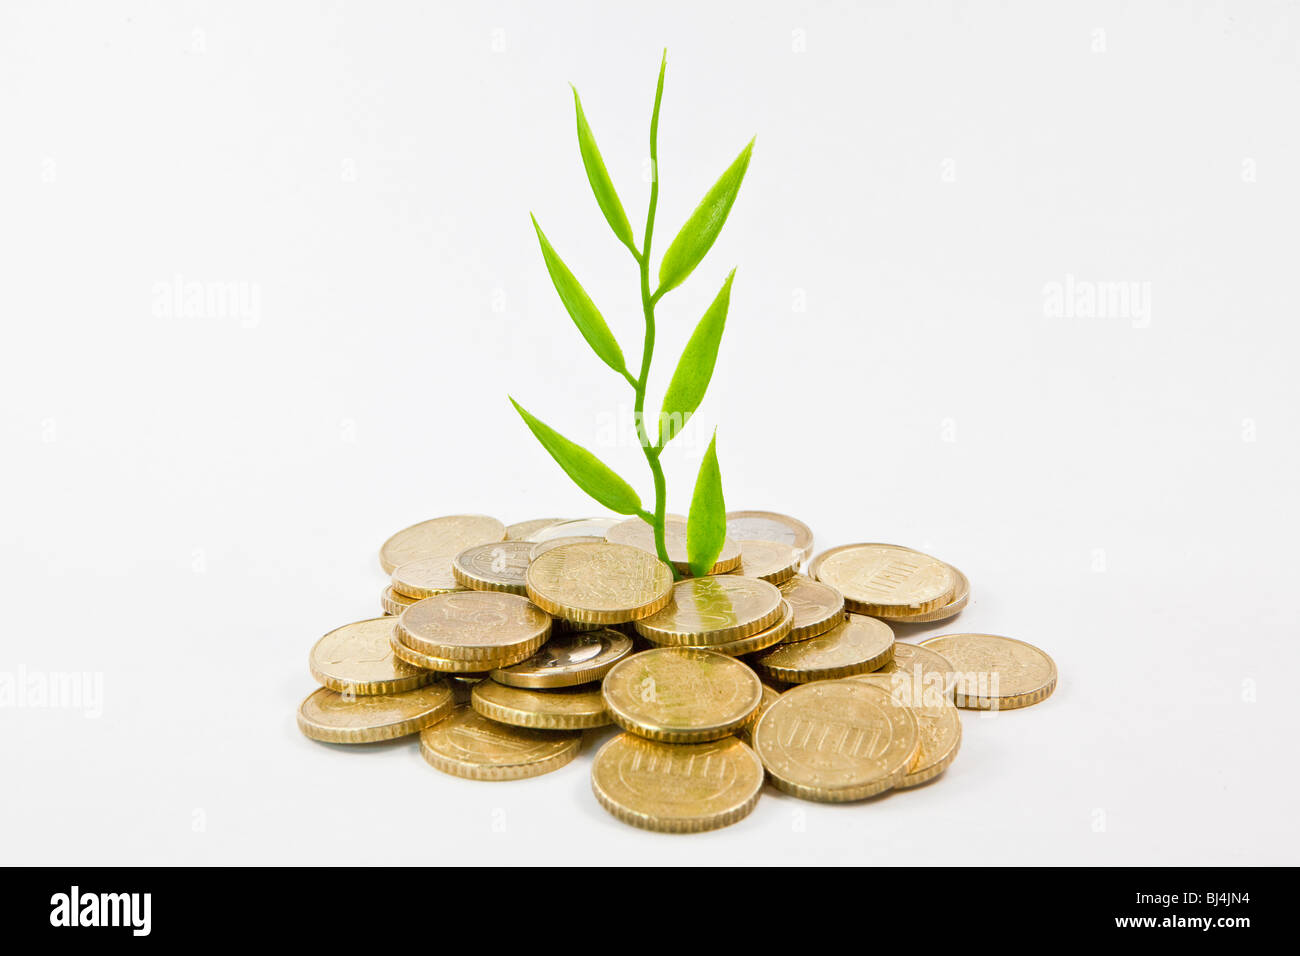 Plant, coins, symbolic image for a successful investment, growing returns - Stock Image